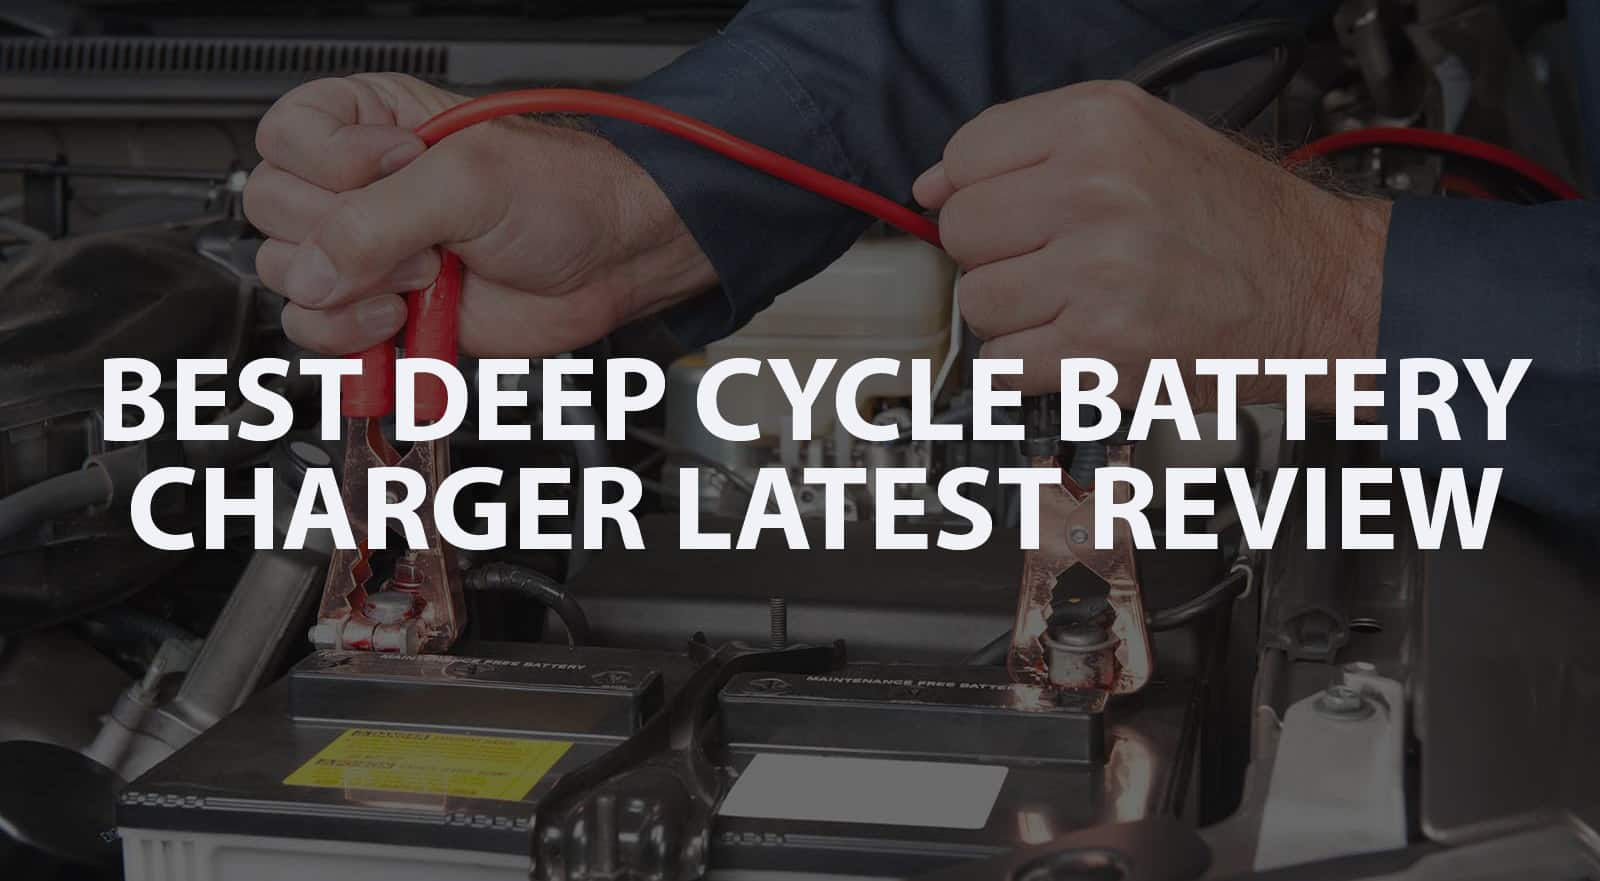 Best Deep Cycle Battery Charger Latest Review copy